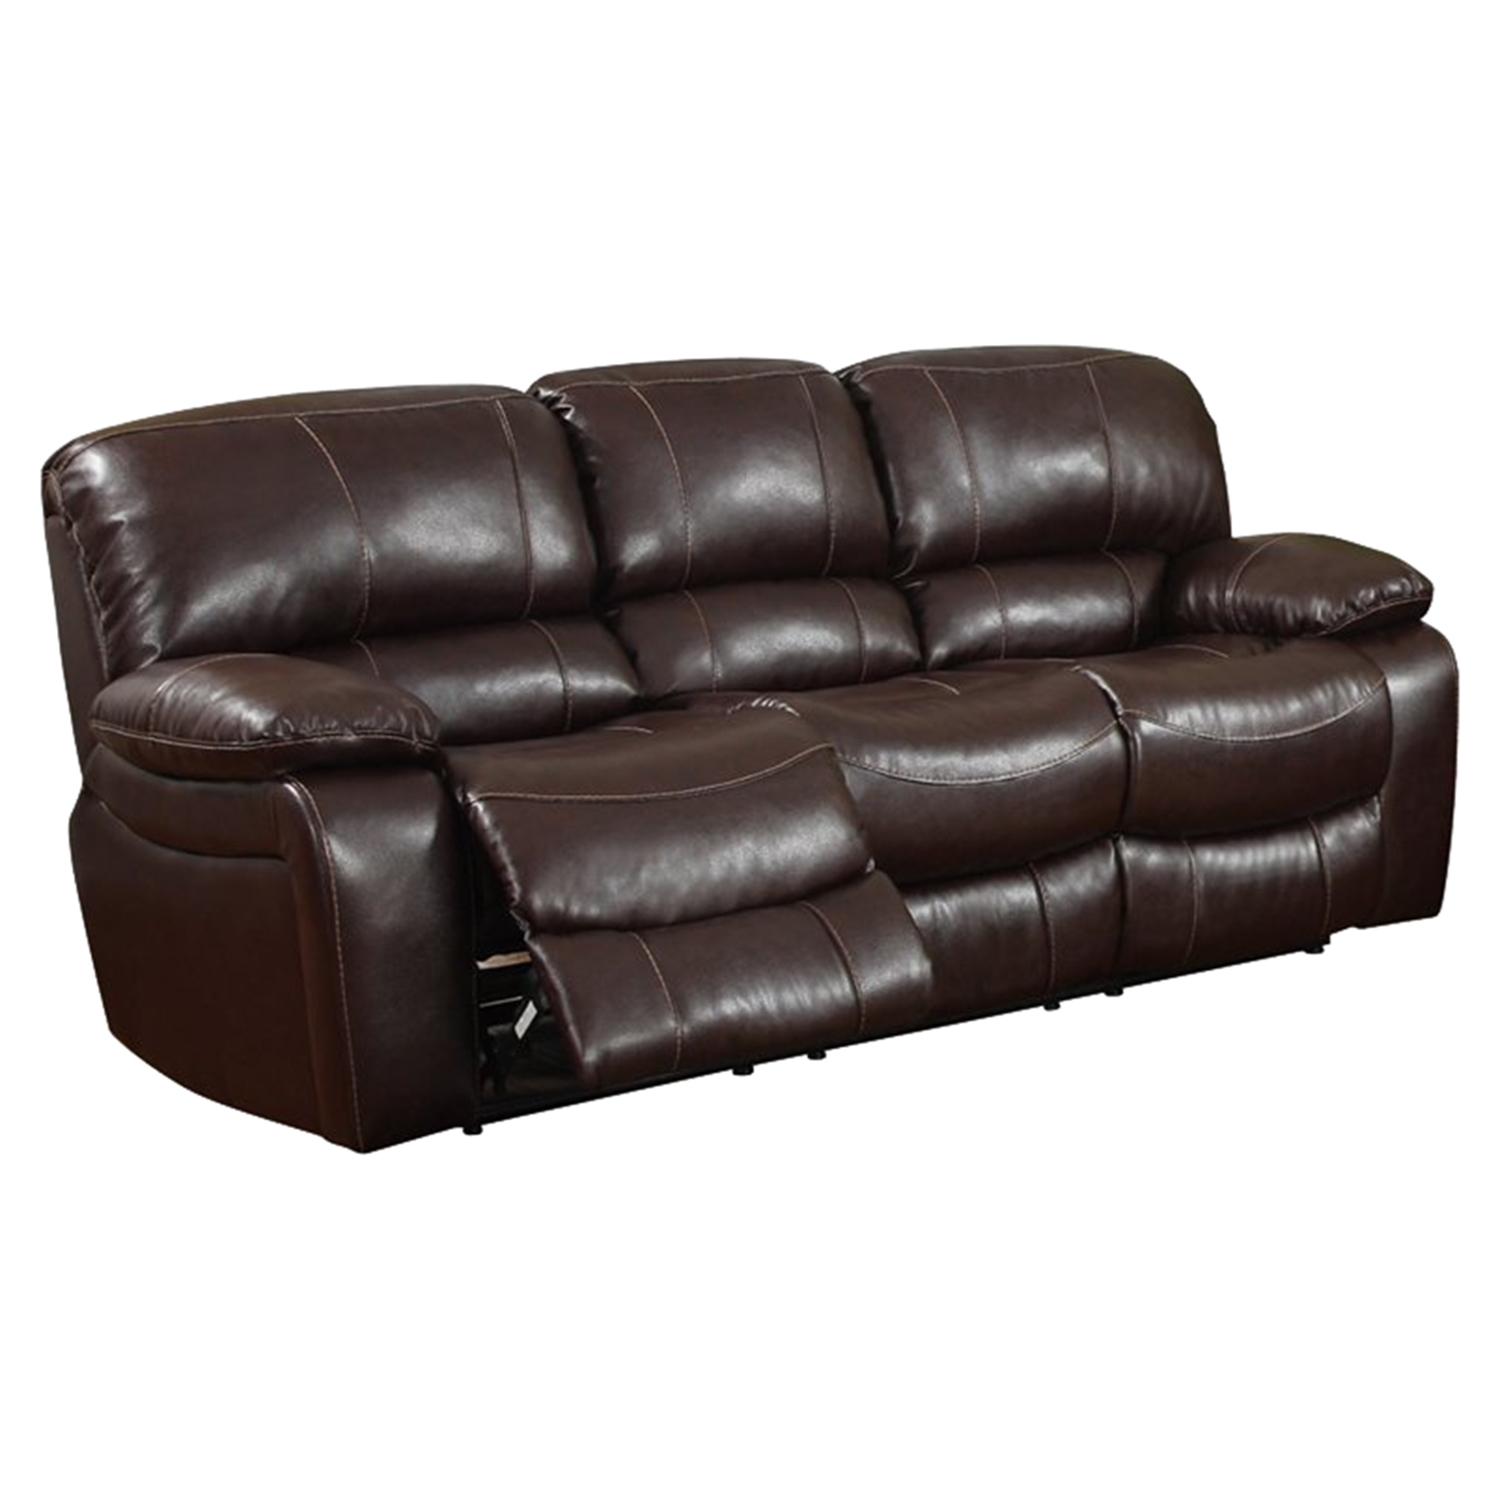 Burgundy Leather Reclining Sofa - GLO-U8122-2007-R-S-M